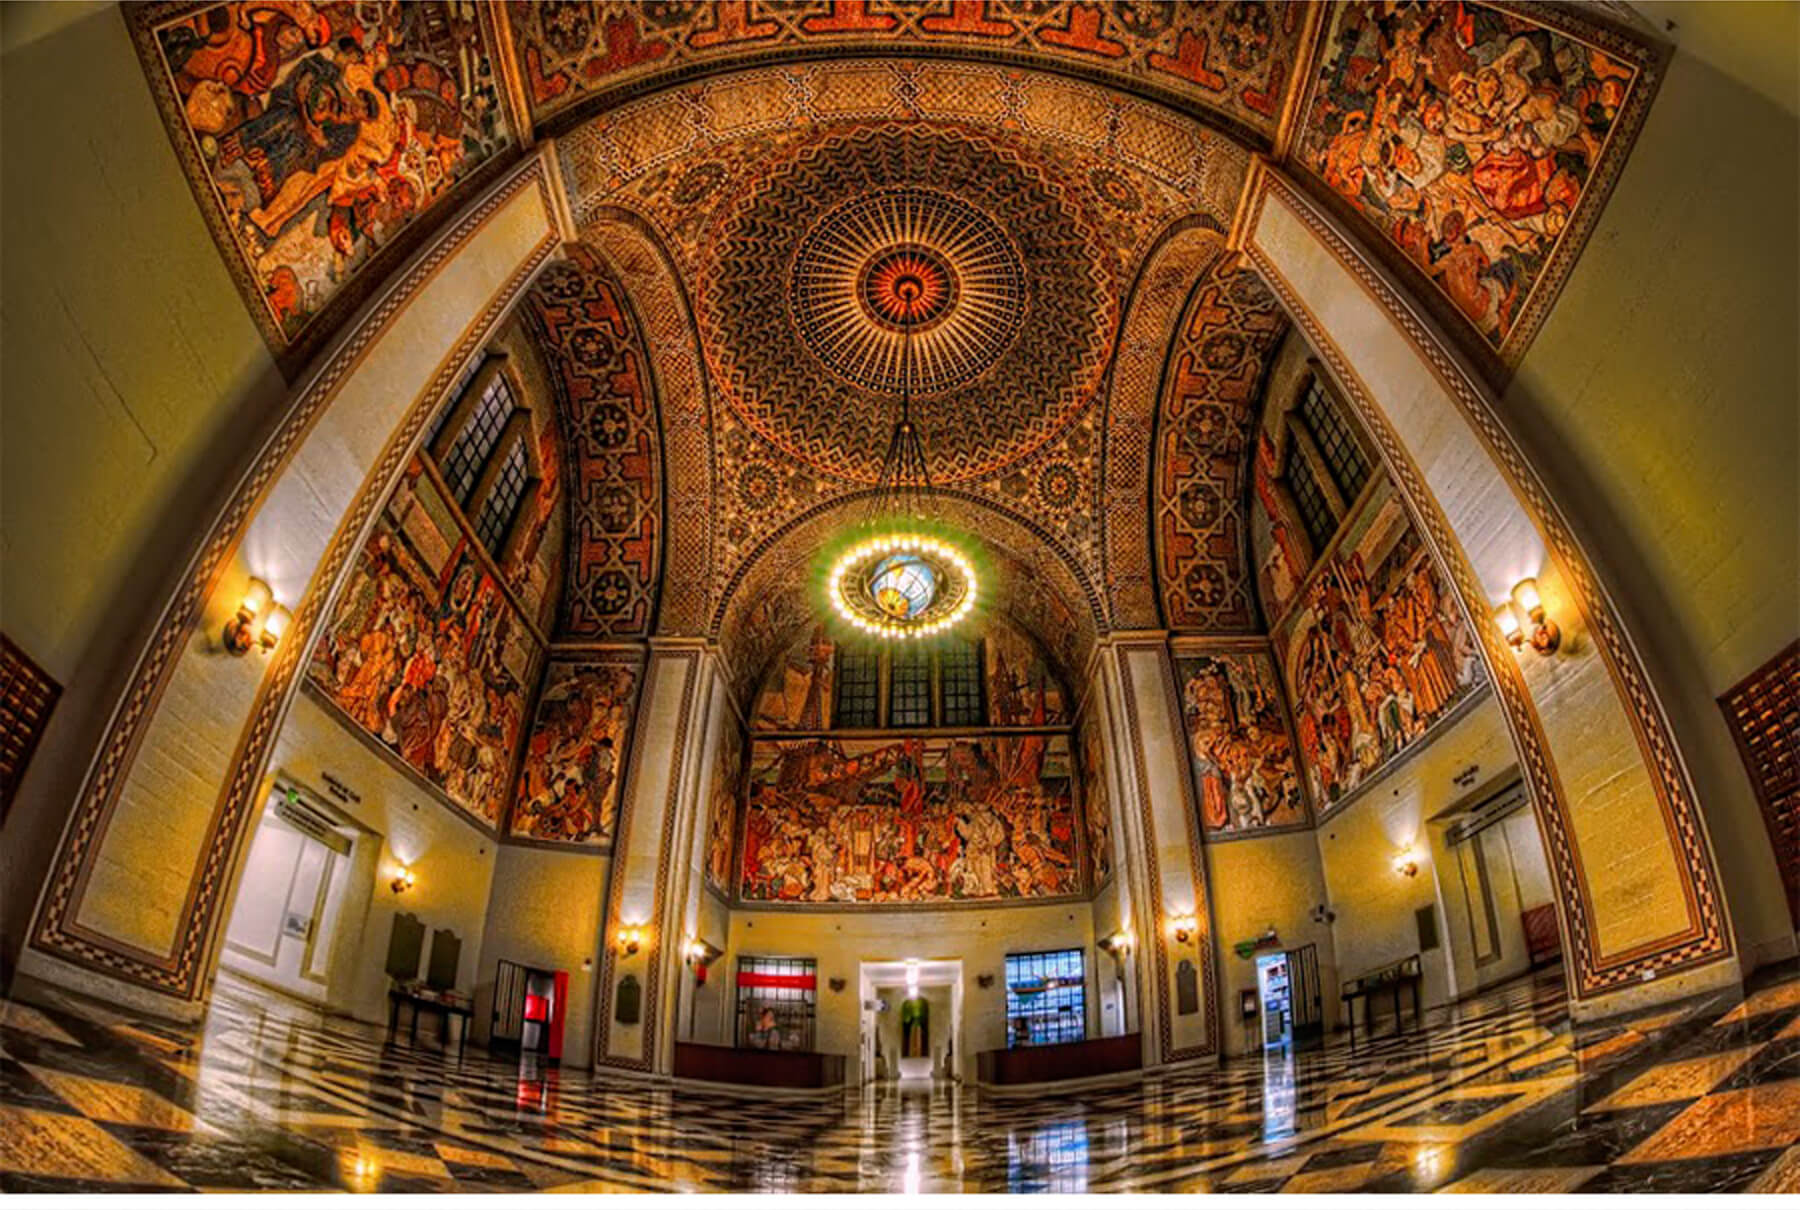 Los Angeles Central Library, Los Angeles, CA